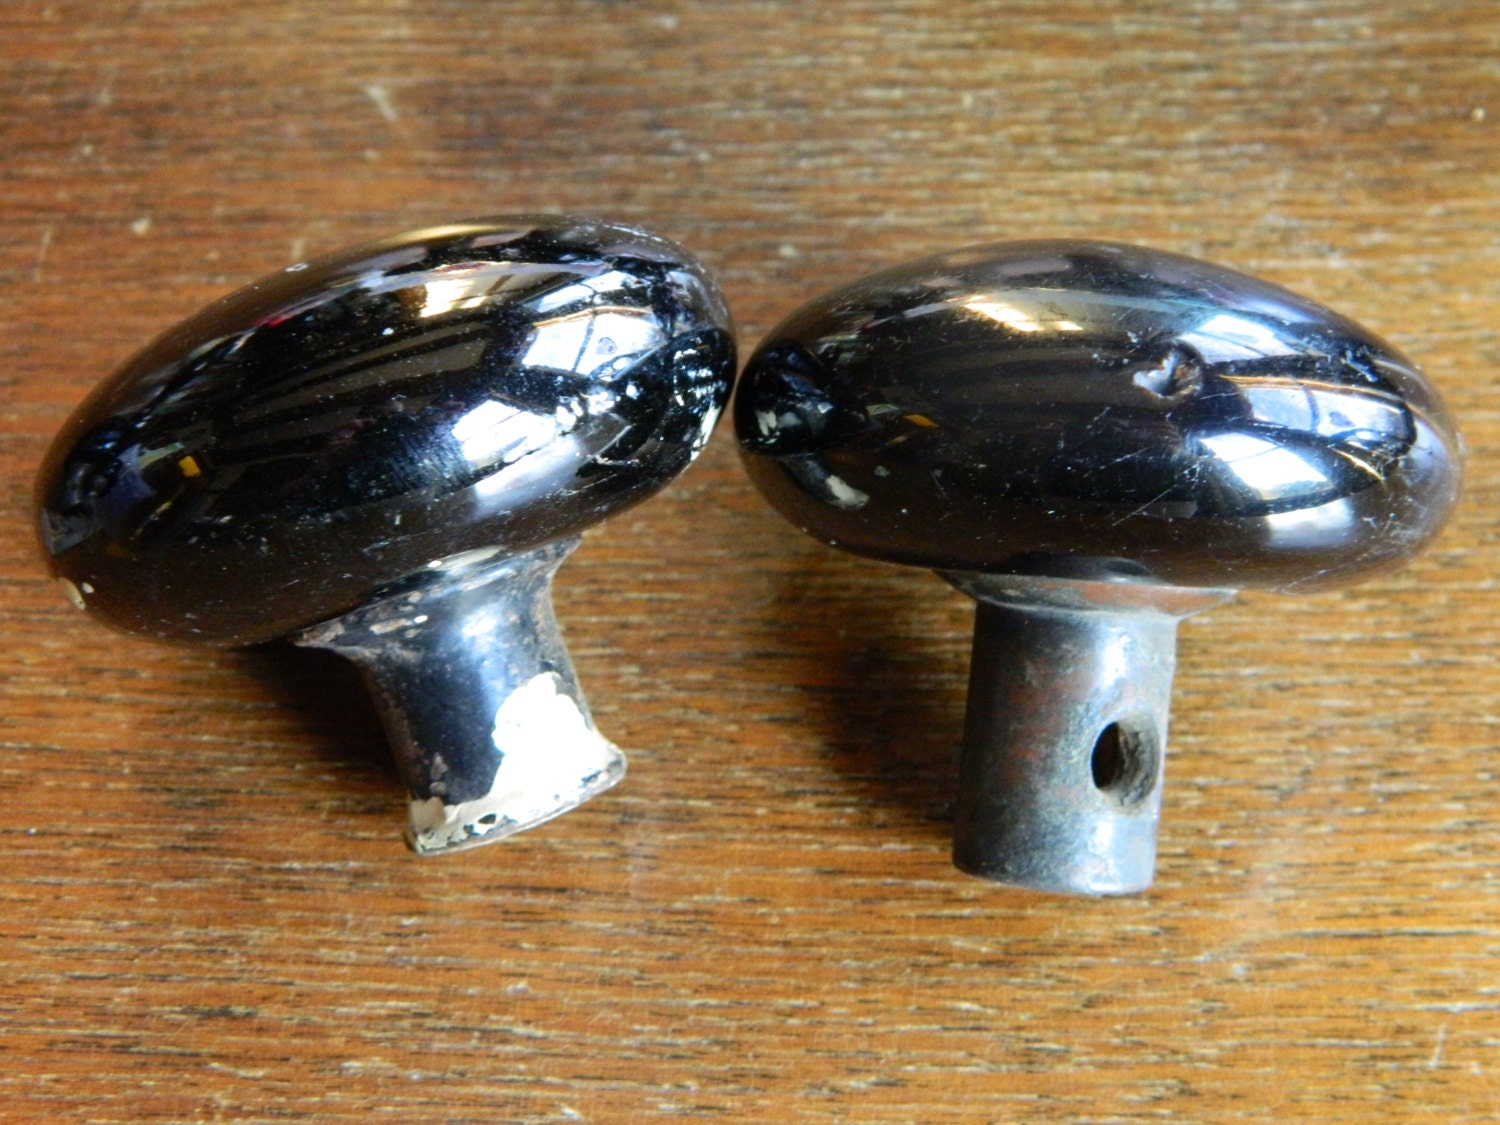 Black Porcelain Door Knobs, Vintage Black Knobs, Farmhouse Doorknobs ...